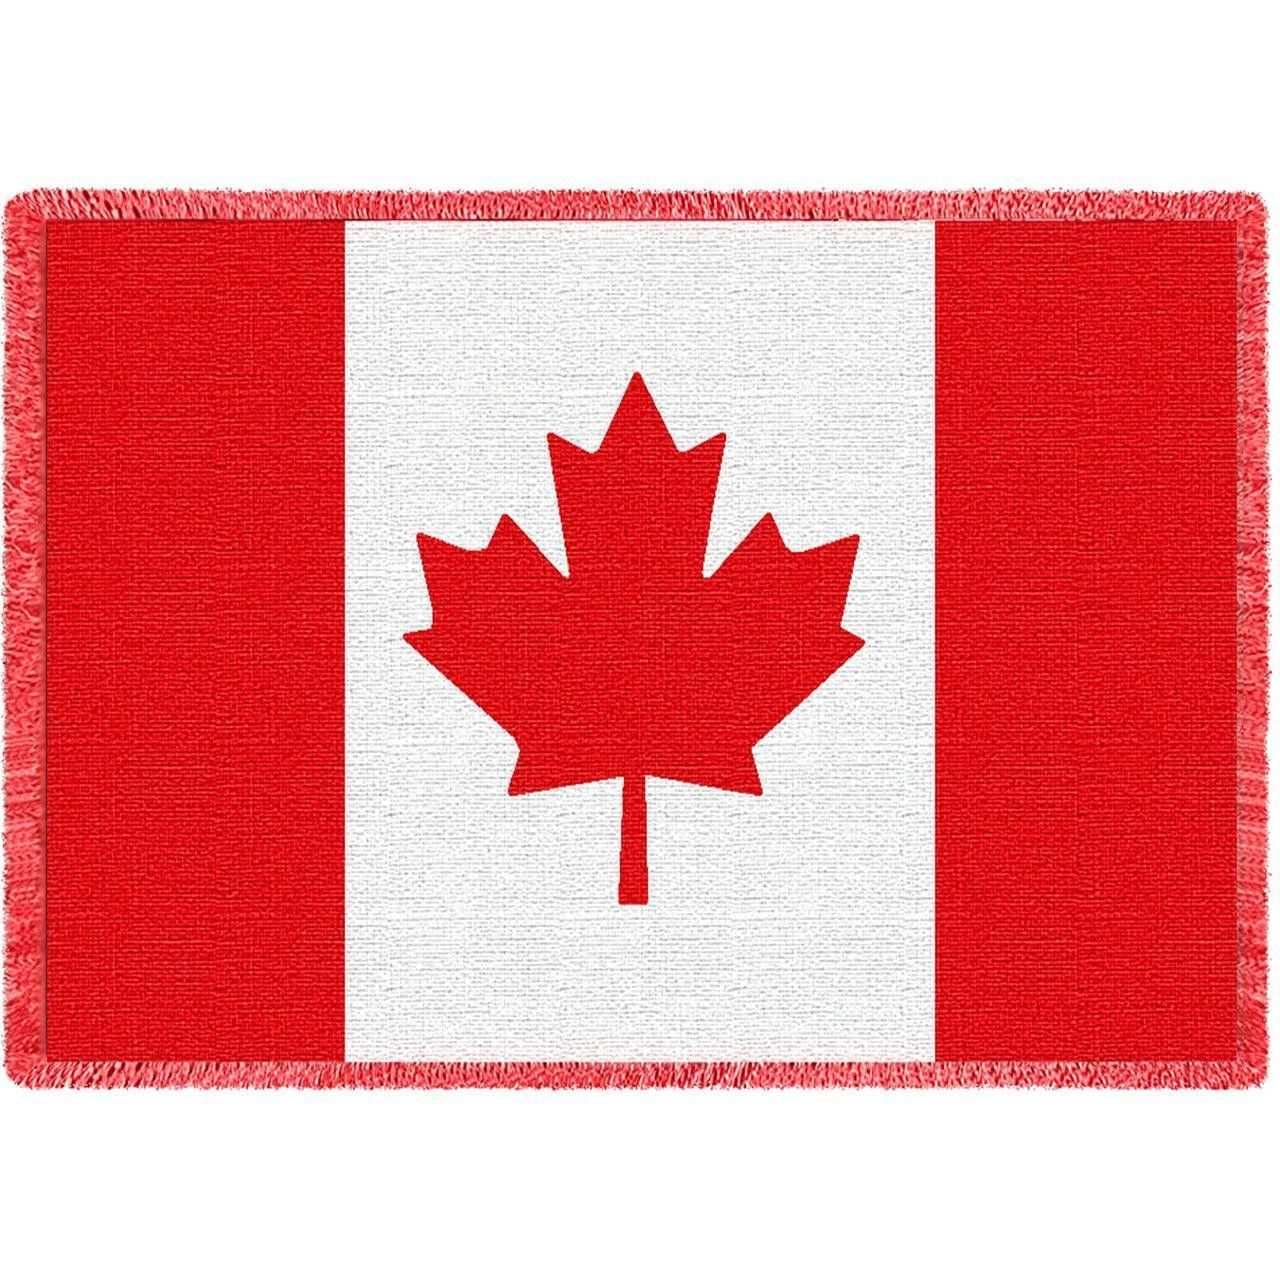 Flag of canada art tapestry throw woven throw blanket